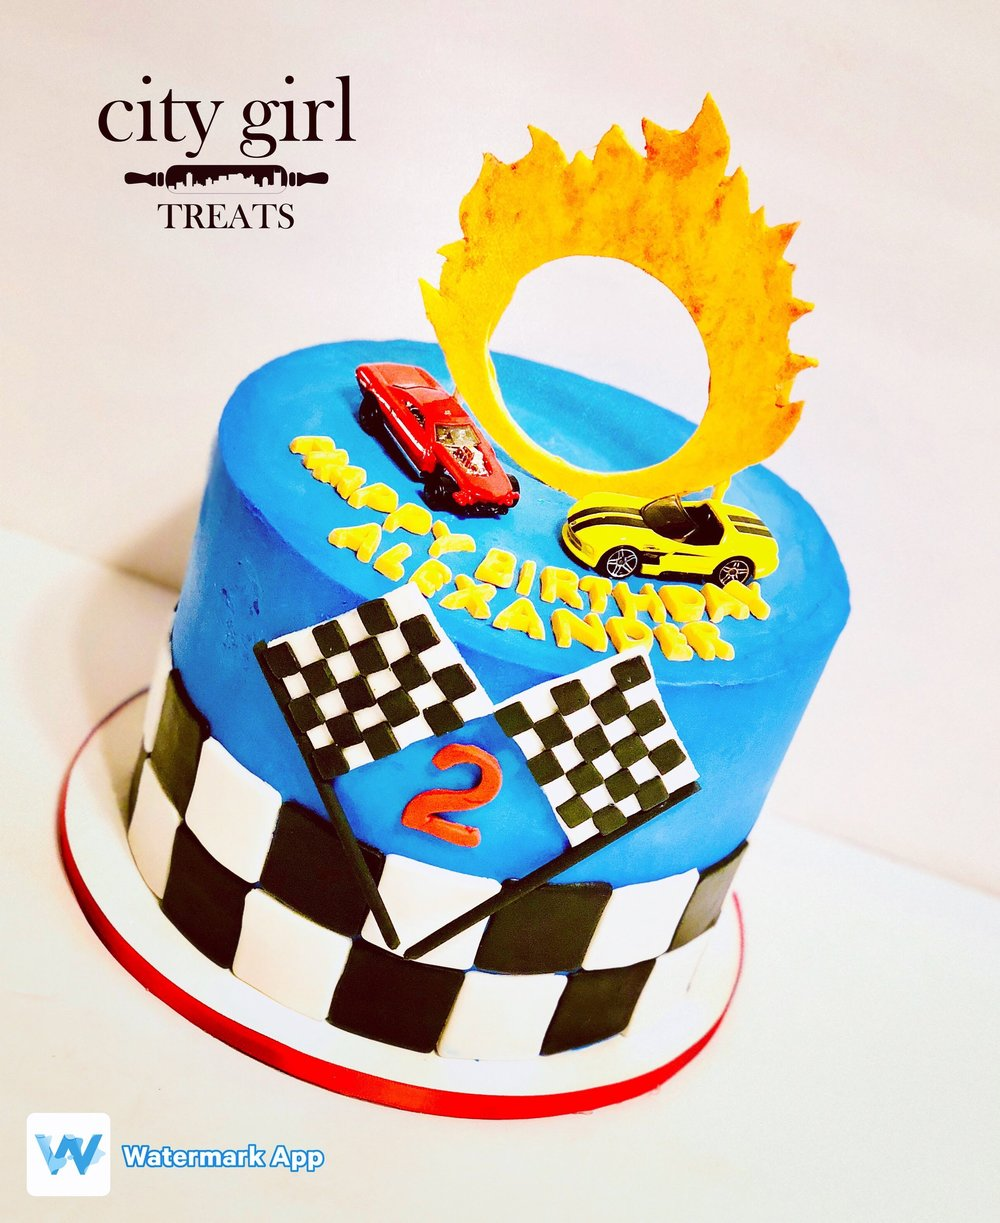 Designer Cakes Nashville TN Based Bakery, City Girl Treats Nashville Children Party Cakes Hot Wheels Cake